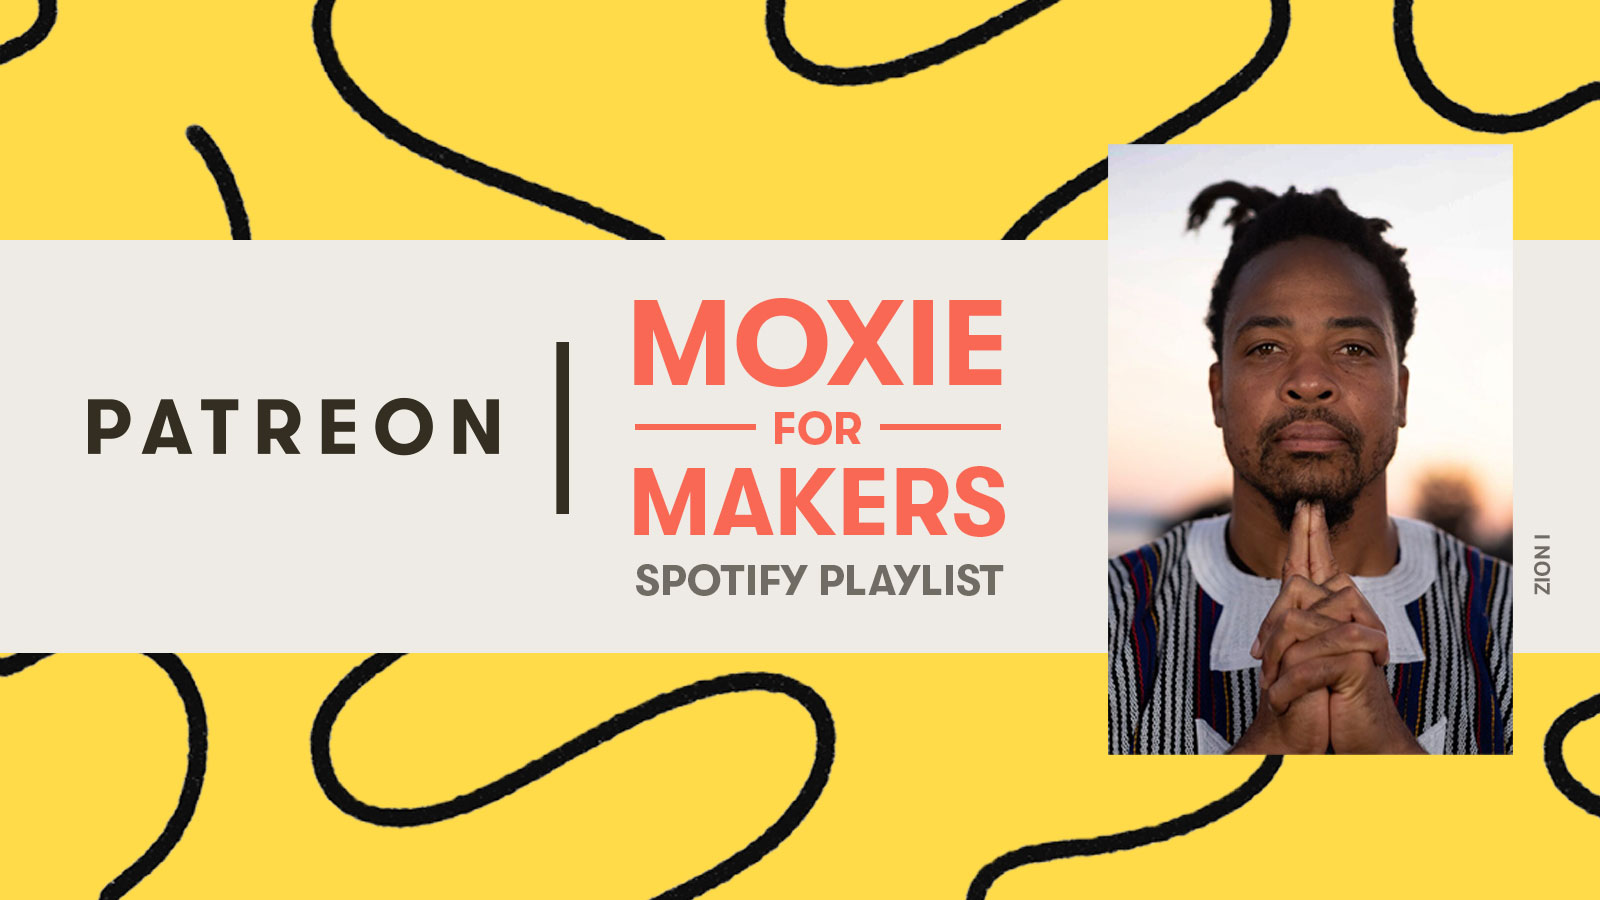 Introducing Moxie for Makers, Patreon's First Spotify Playlist